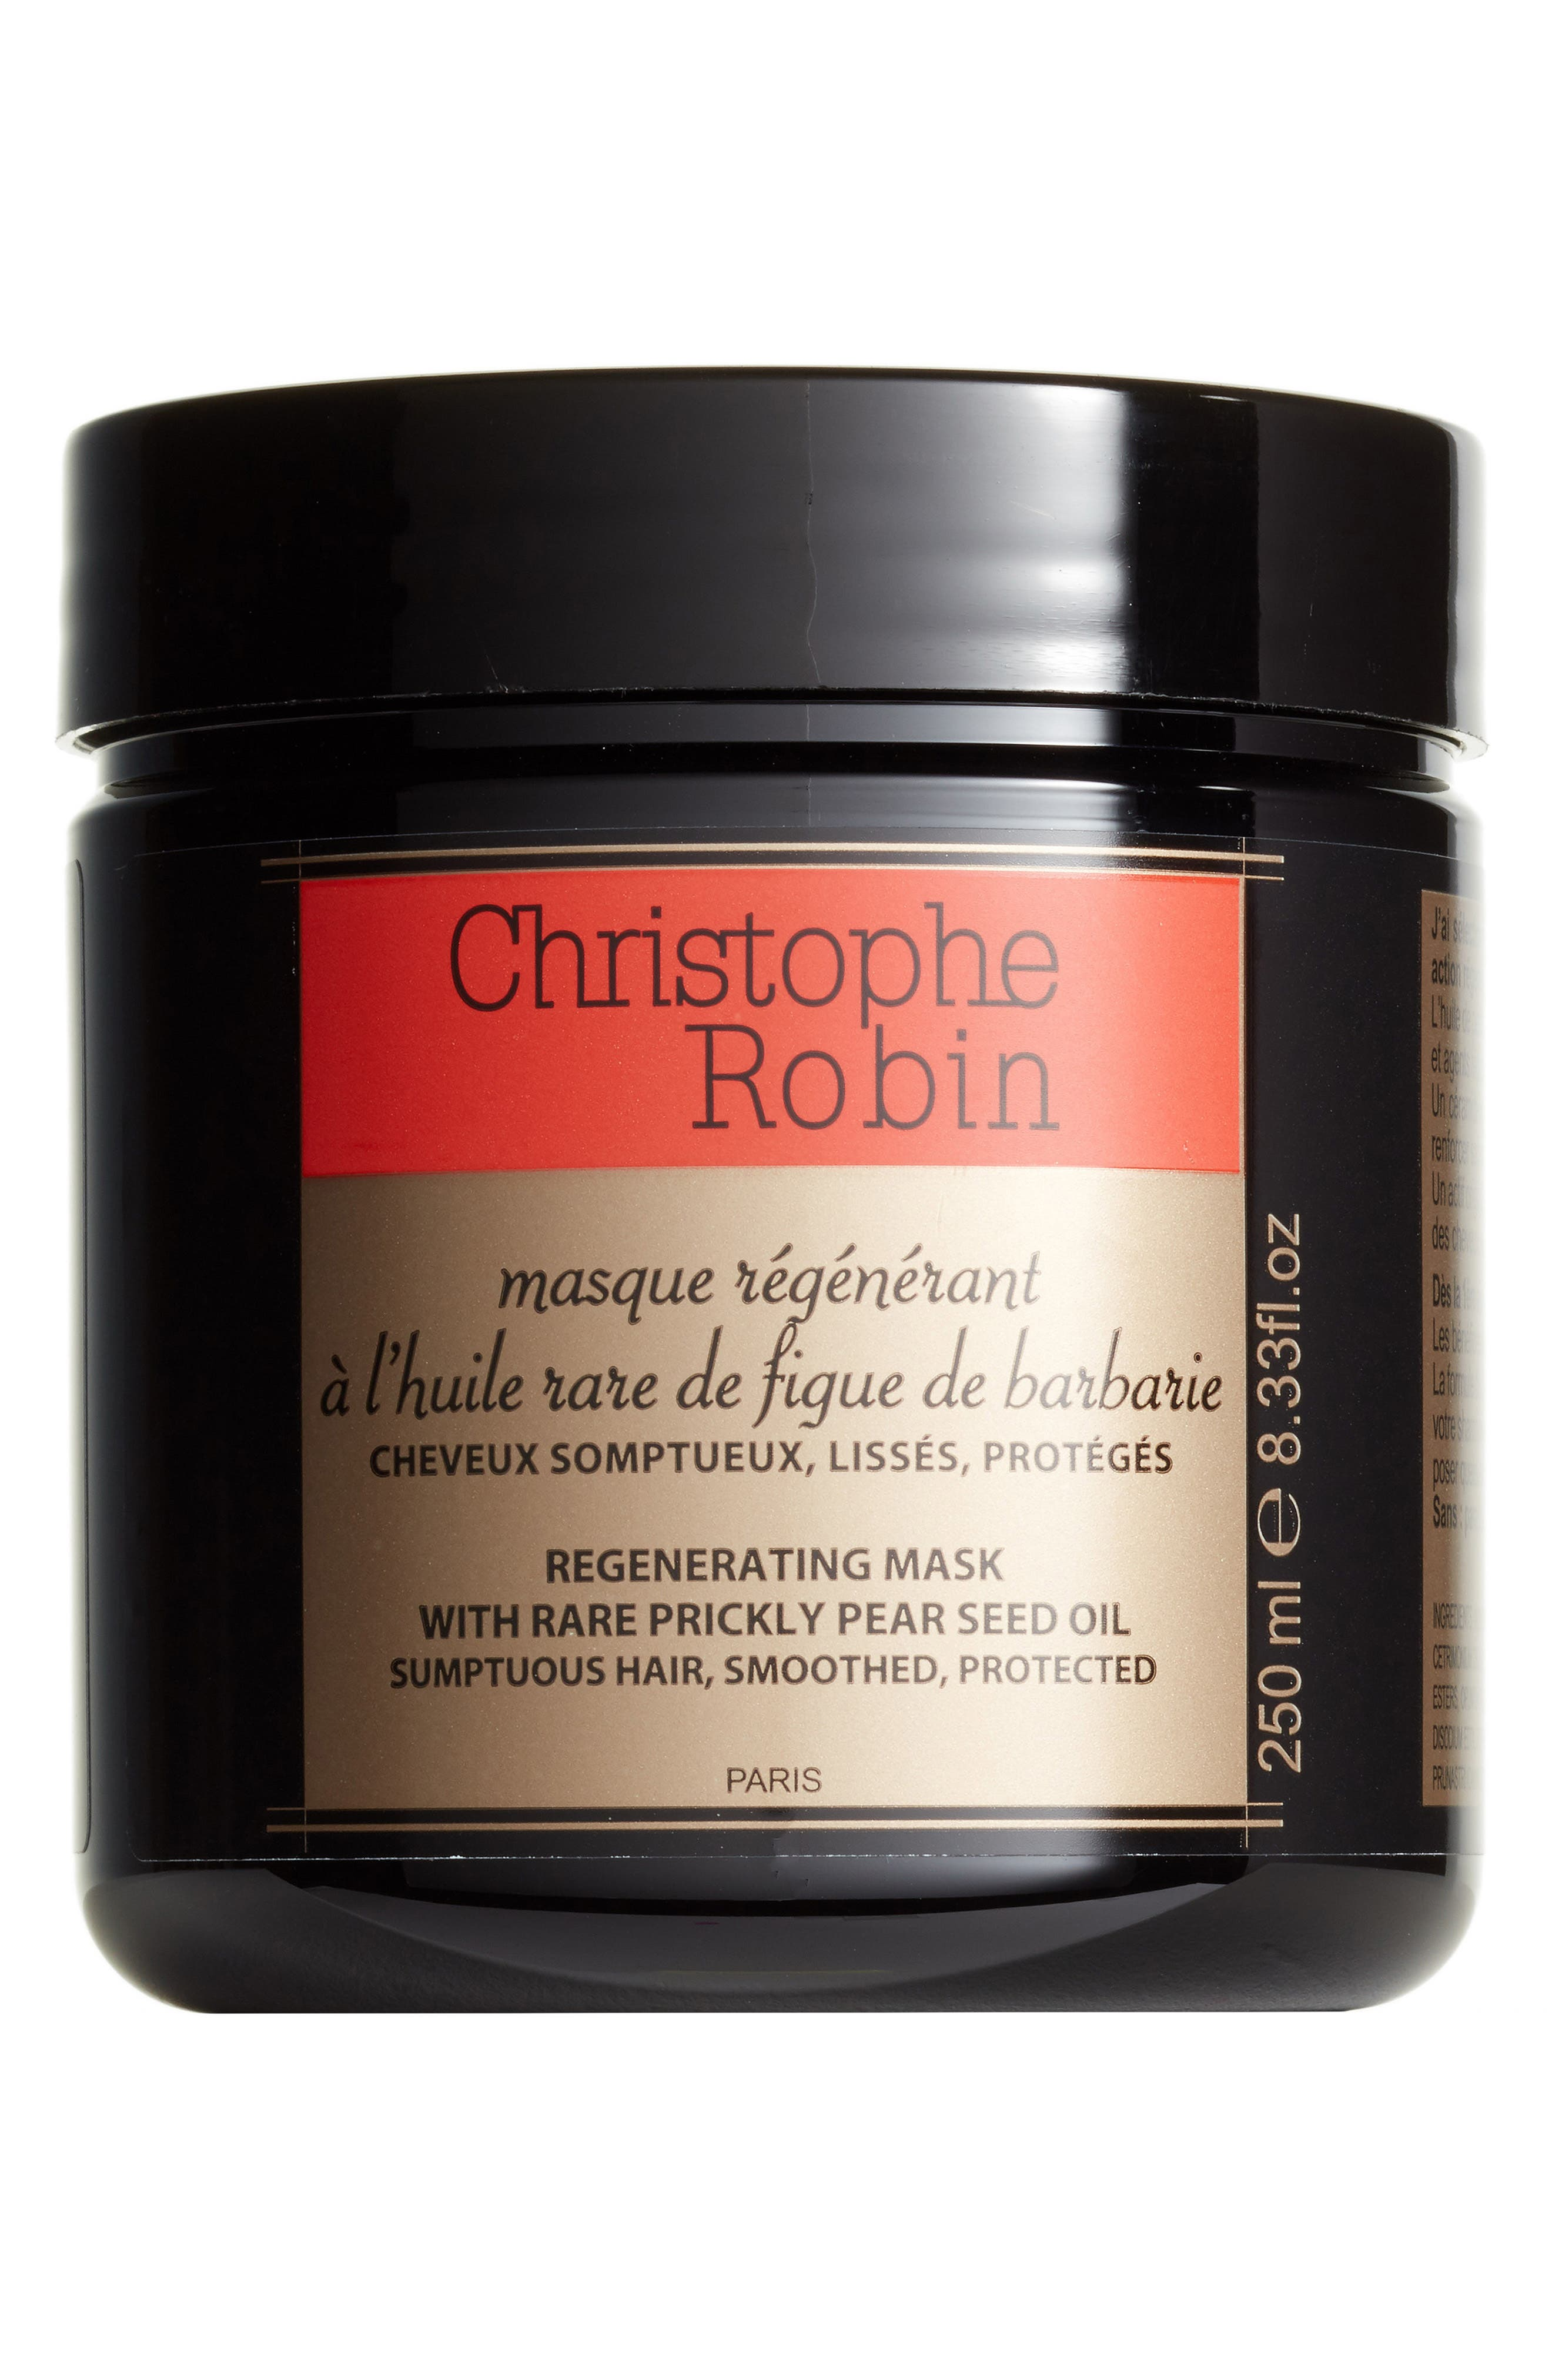 SPACE.NK.apothecary Christophe Robin Regenerating Mask with Rare Prickly Pear Seed Oil